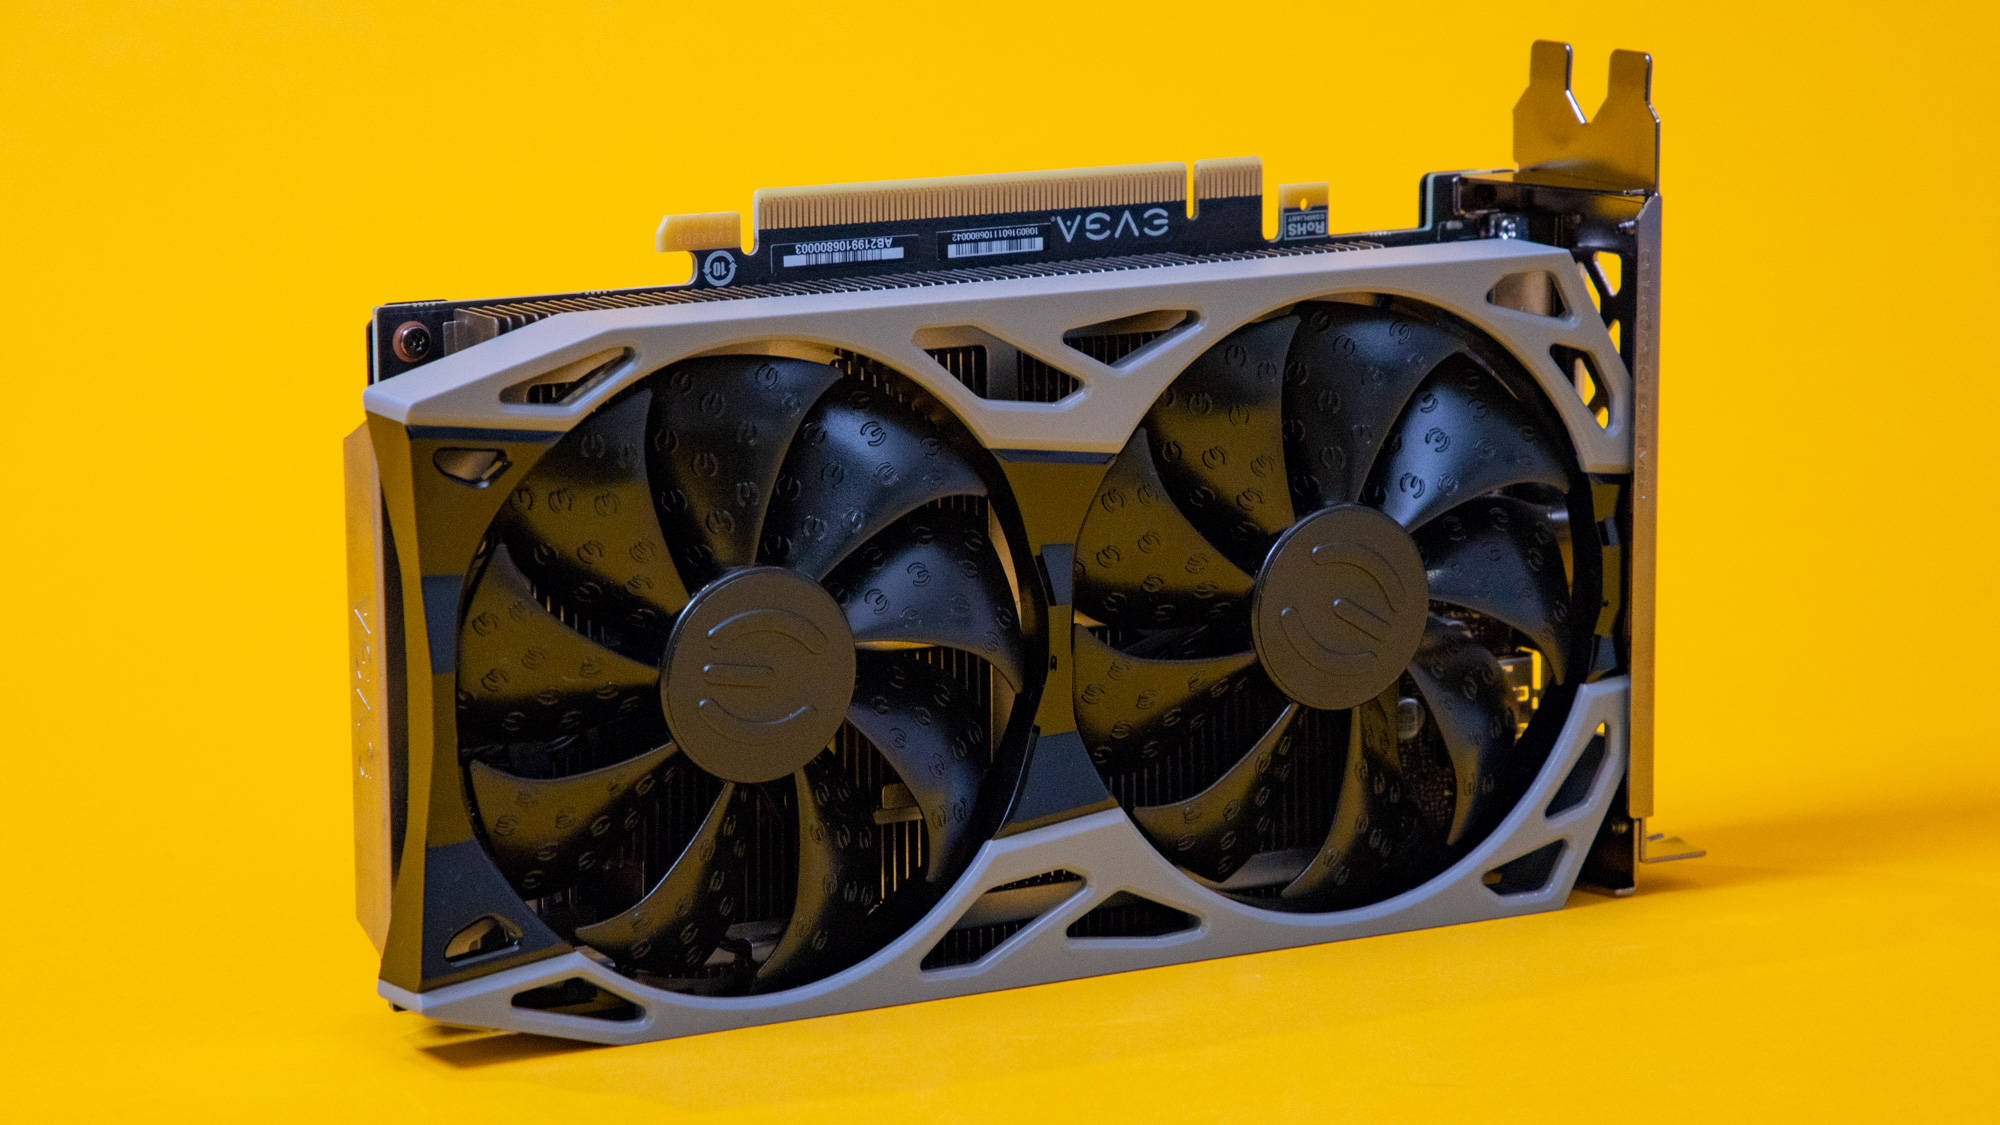 Nvidia GeForce GTX 1660 Super is the best Nvidia graphics card for you, if you're on the budget.